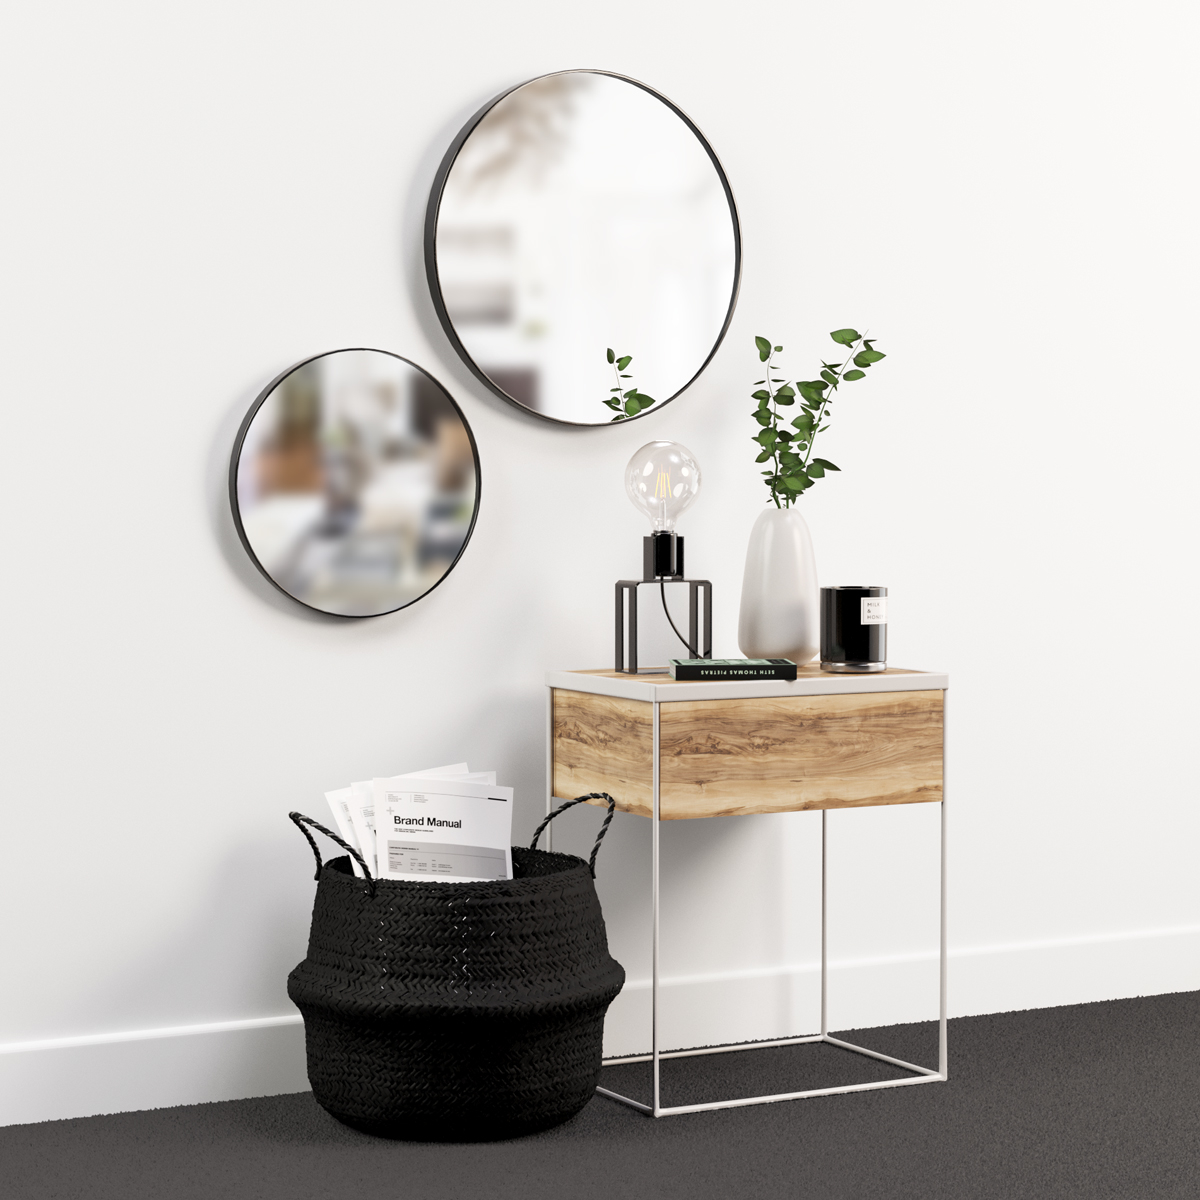 Decoration Set With Nightstand Lamp And Mirrors